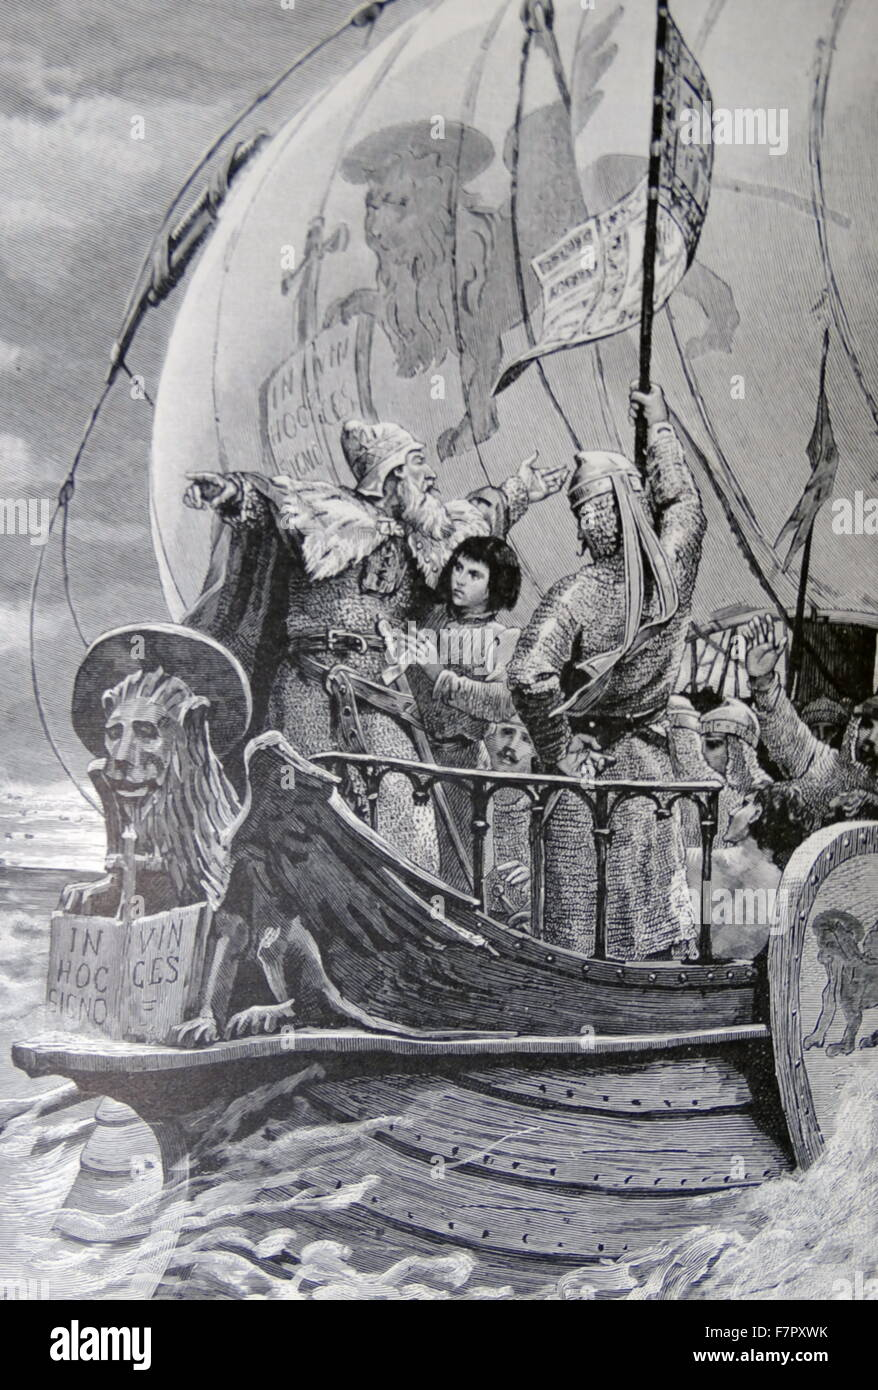 venetian warship of 9th century sails to resist Lombardian advance - Stock Image